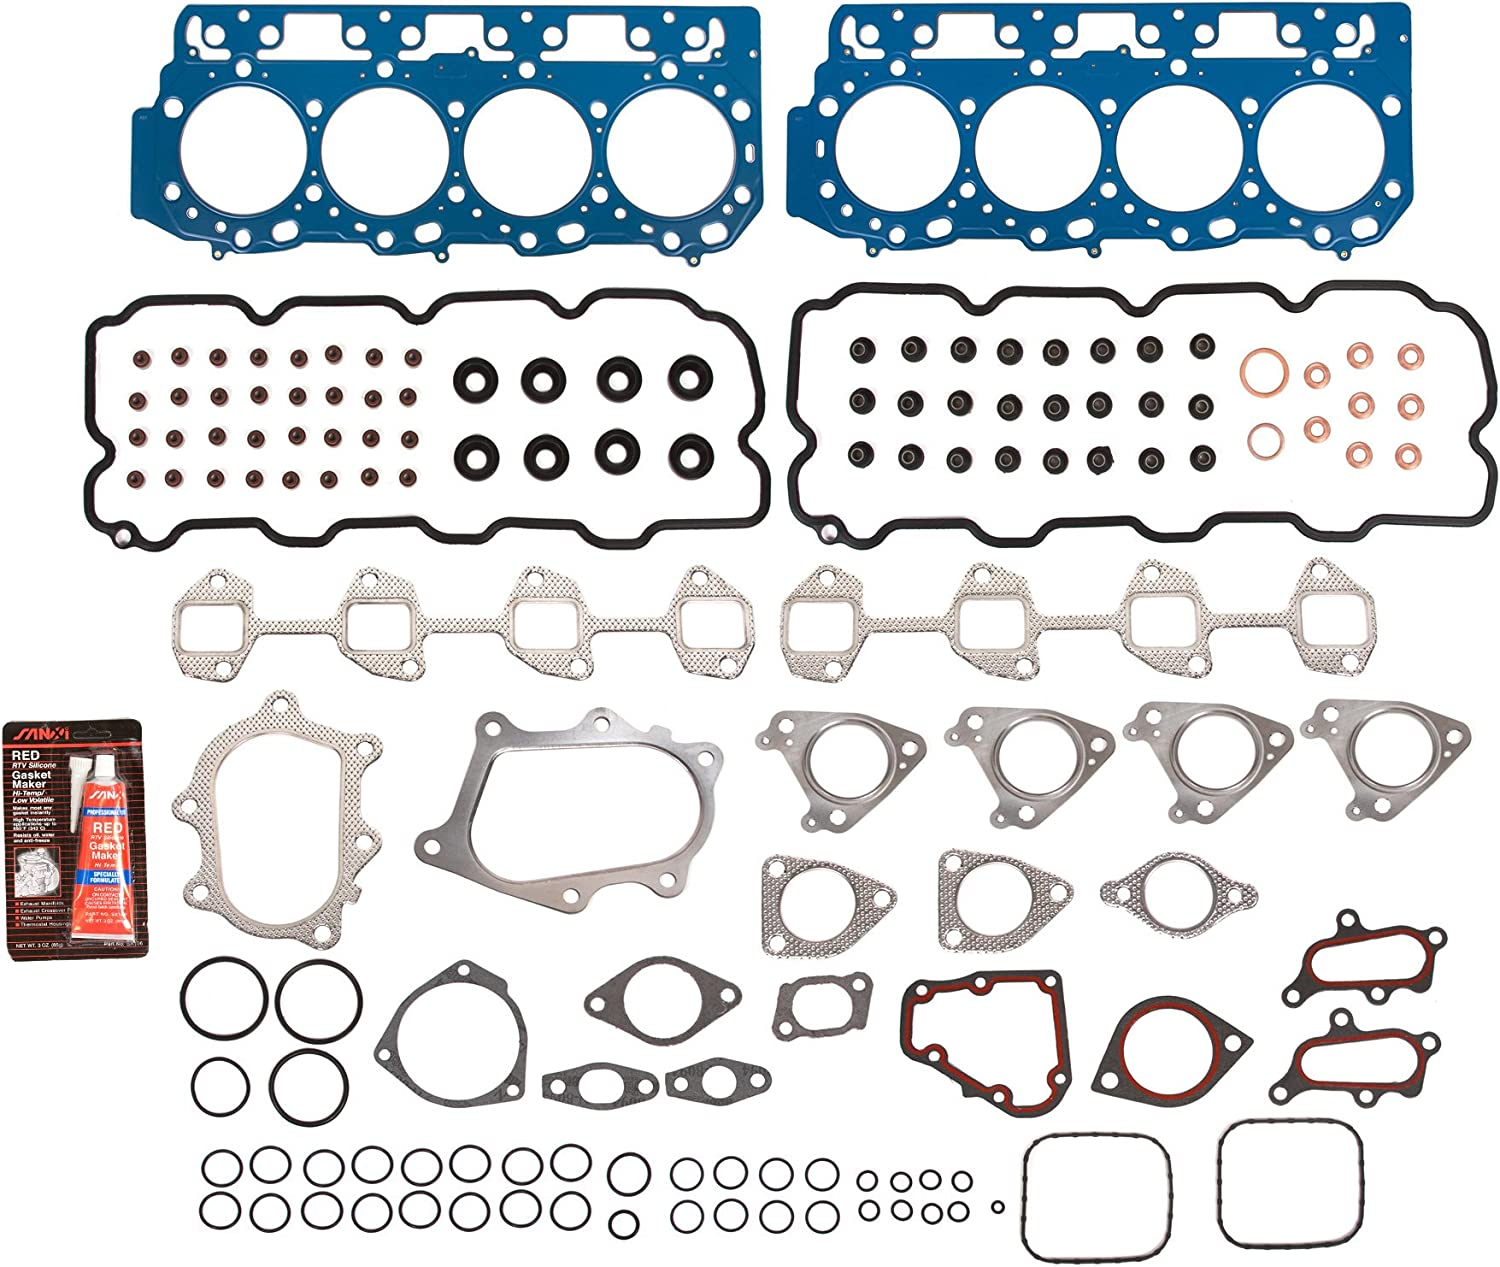 Evergreen 8-10439 Cylinder Head Gasket Set